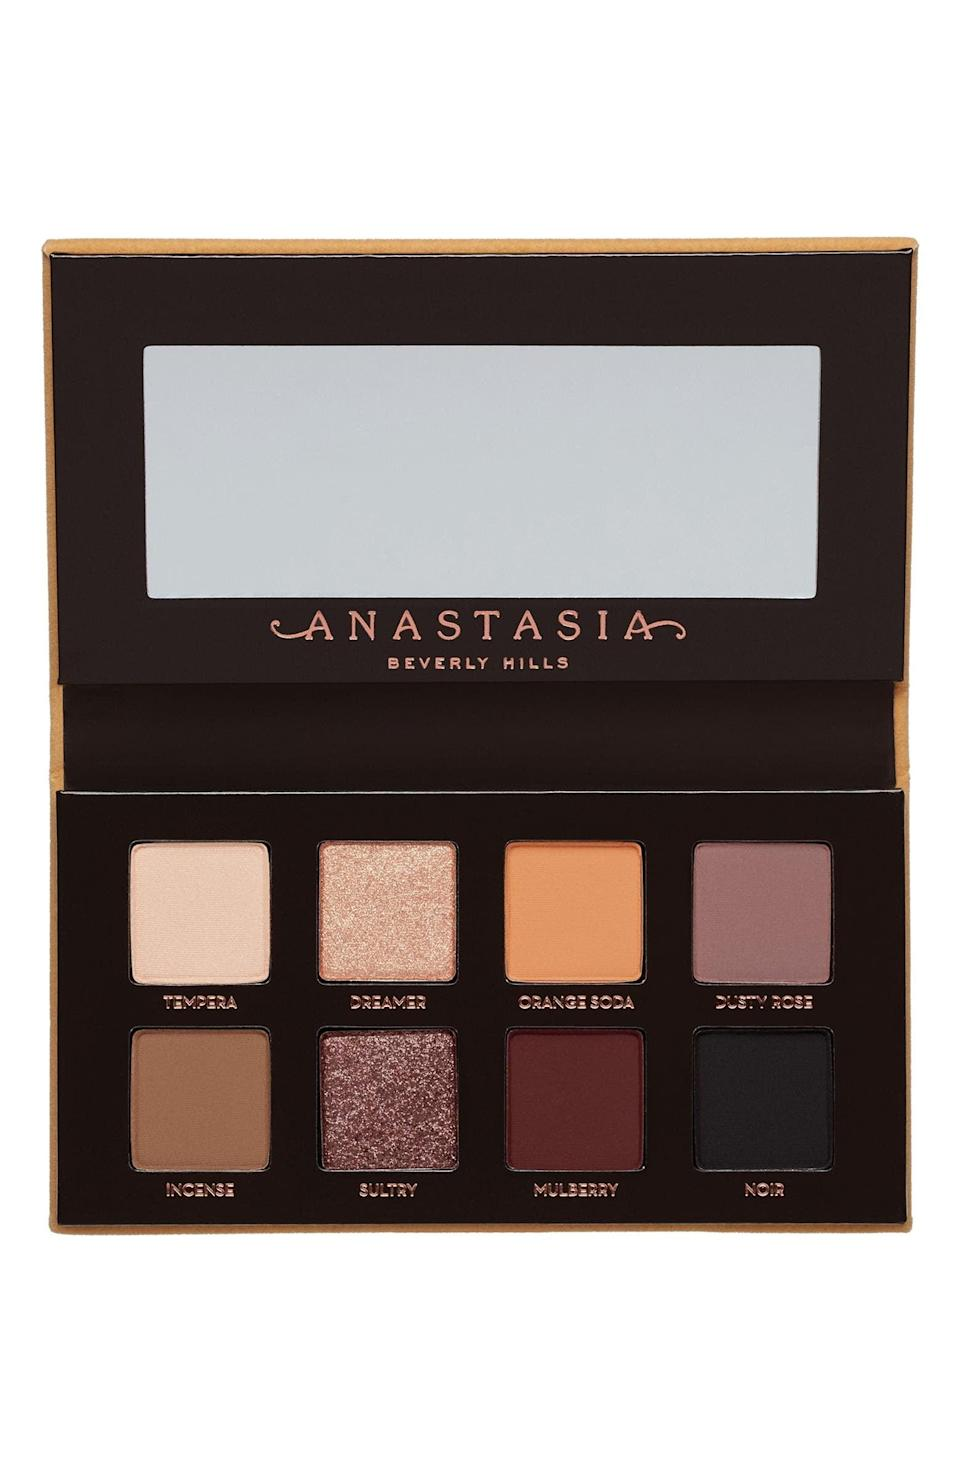 """<p><strong> The Product: </strong> <span>Anastasia Beverly Hills Soft Glam II Eyeshadow Palette</span> ($29)</p> <p><strong> The Rating: </strong> 4.8 stars </p> <p><strong> Why Customers Love It: </strong> For an everyday, natural look, or glam on-the-go, customers love this palette for it's great forumaltion, pigmentation and cute packaging. """"Great mini palette with all colors to get an everyday day to night look! This is great for travel and quickly semi neutral looks.""""</p>"""